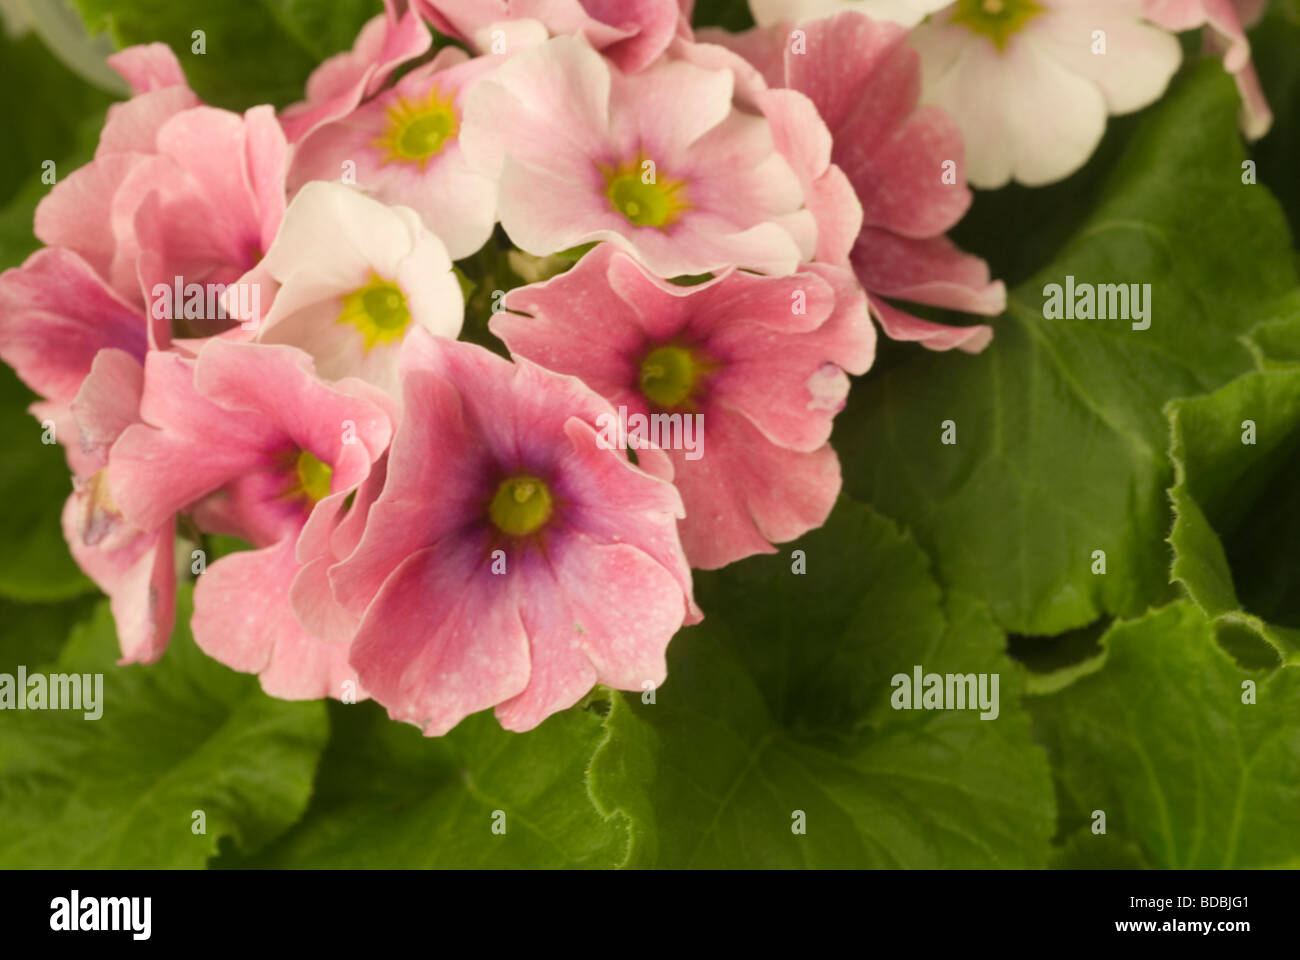 Flowers of Primula obconica 'Twilly Serie', Primulaceae - Stock Image